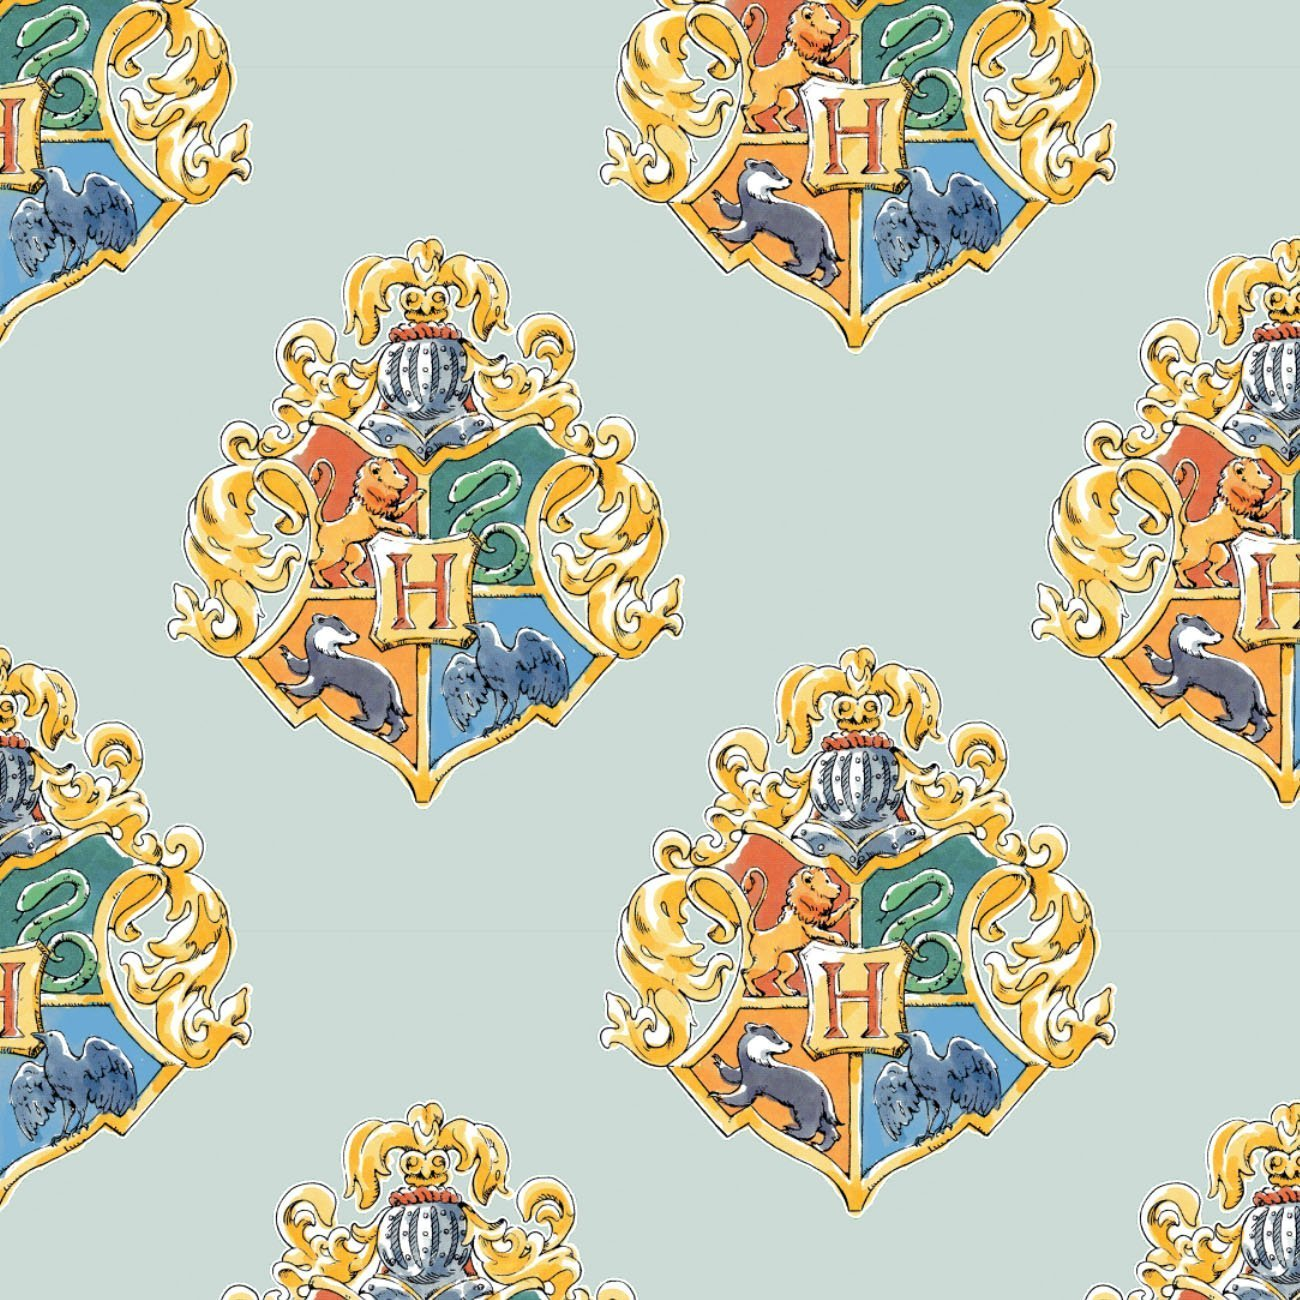 Harry Potter Fabric 23800823 02 Wizarding World Crest Light Blue